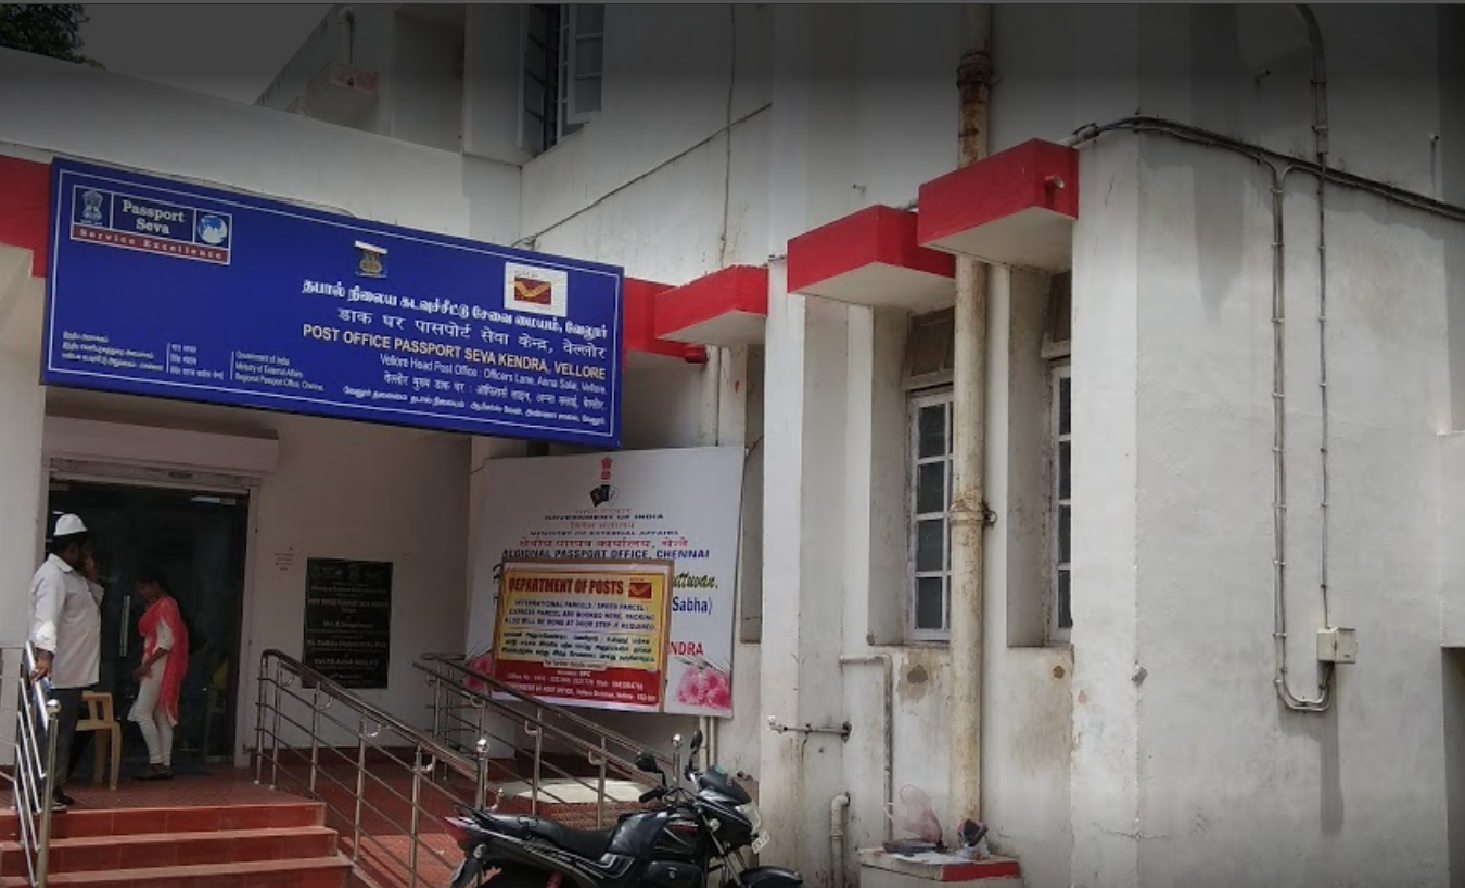 Vellore Passport Office [Passport Seva Kendra in Vellore